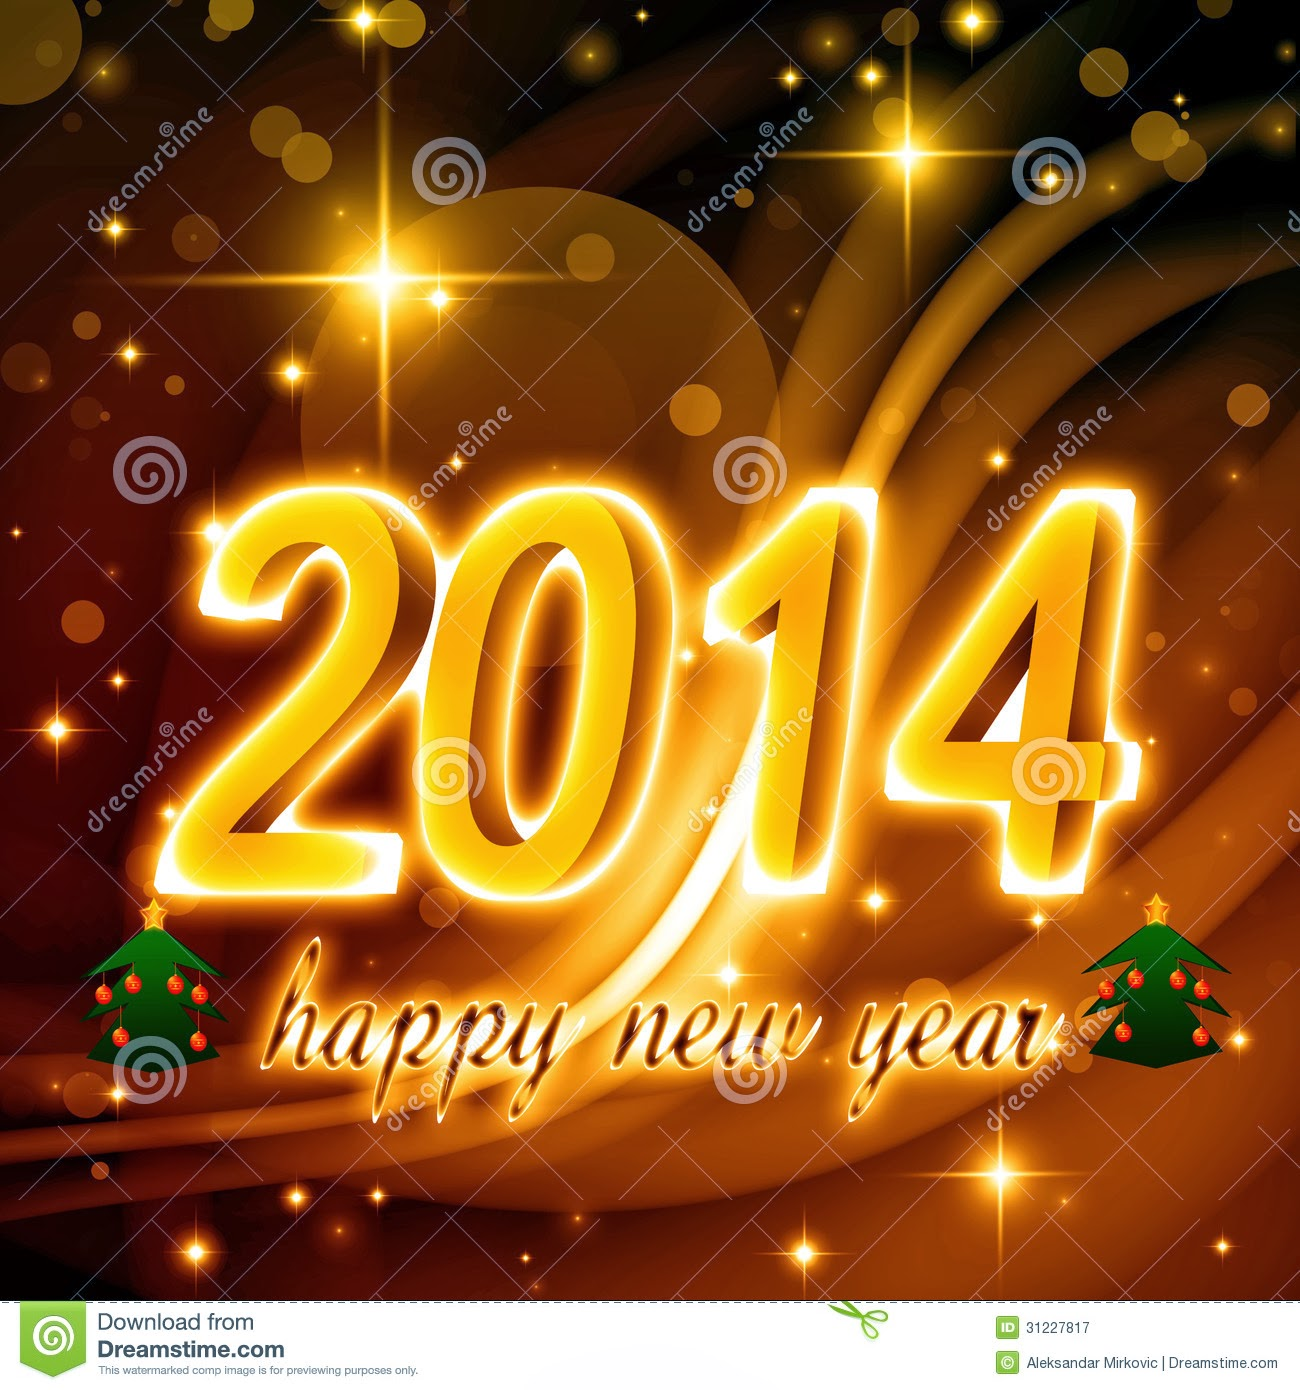 Happy New Year 2014 Greetings Happy New Year 2014 Greetings.11 Happy New Year Letterhead Free 2014 2014